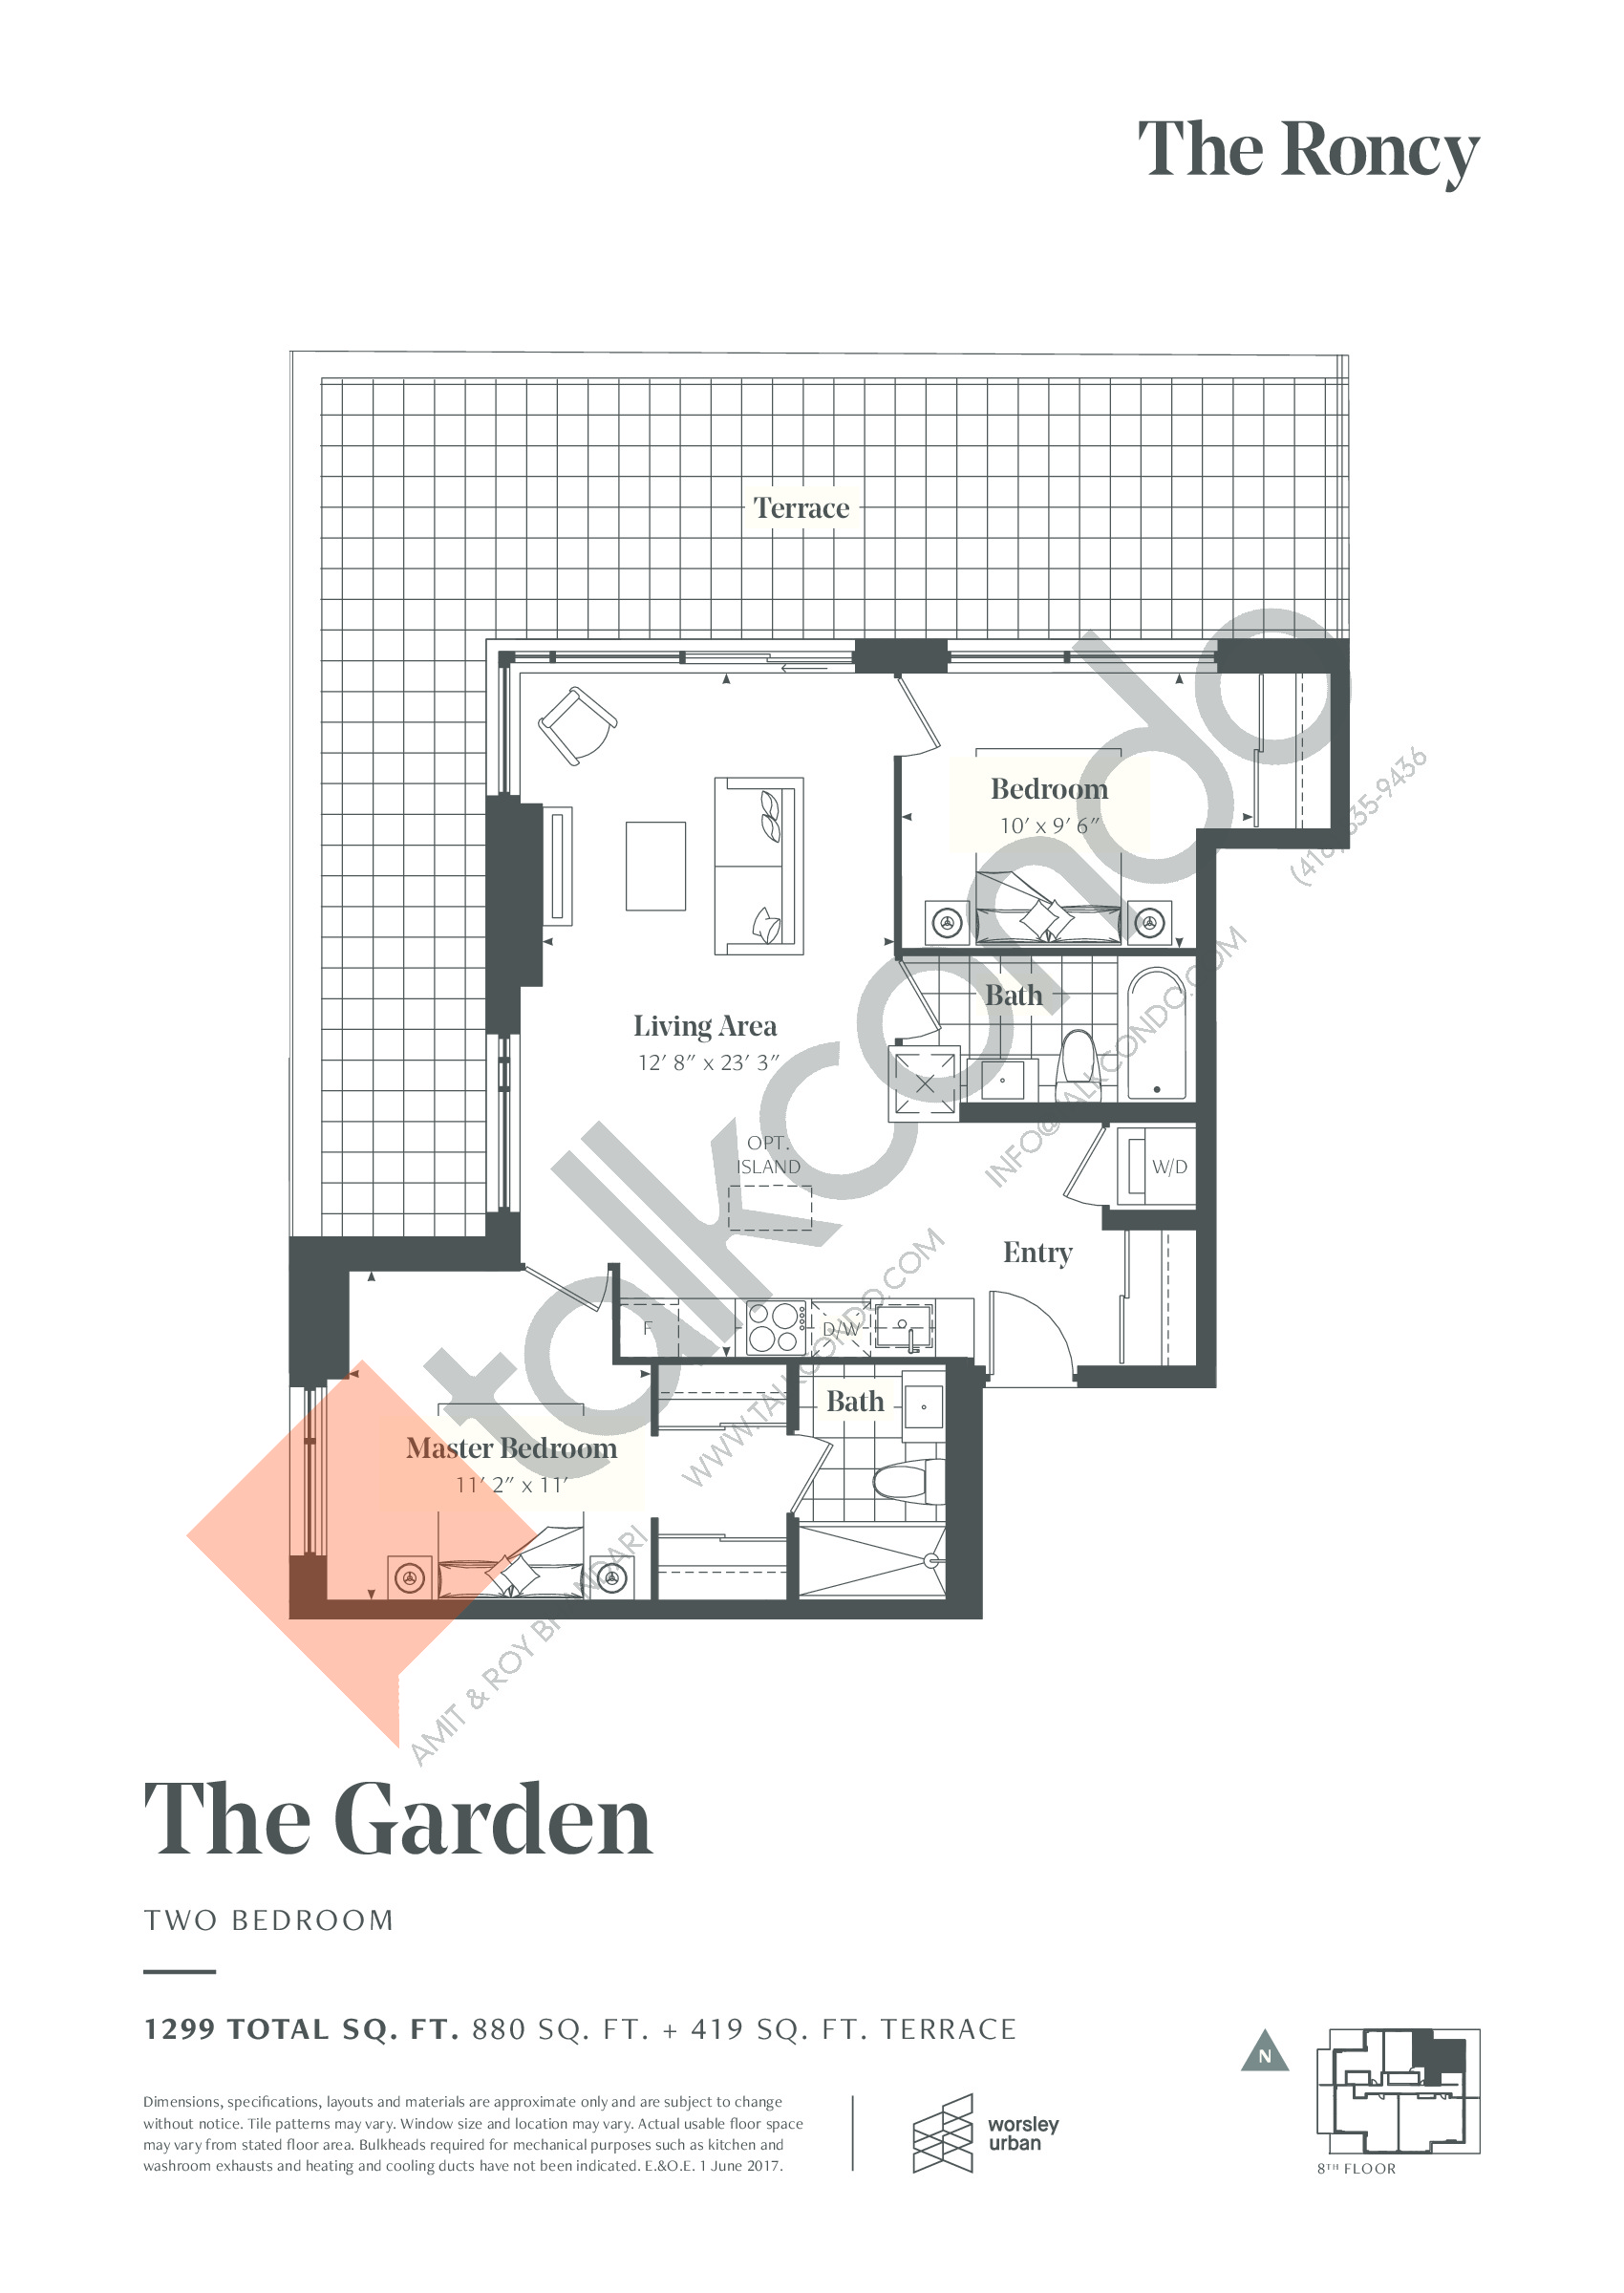 The Garden Floor Plan at The Roncy Condos - 880 sq.ft